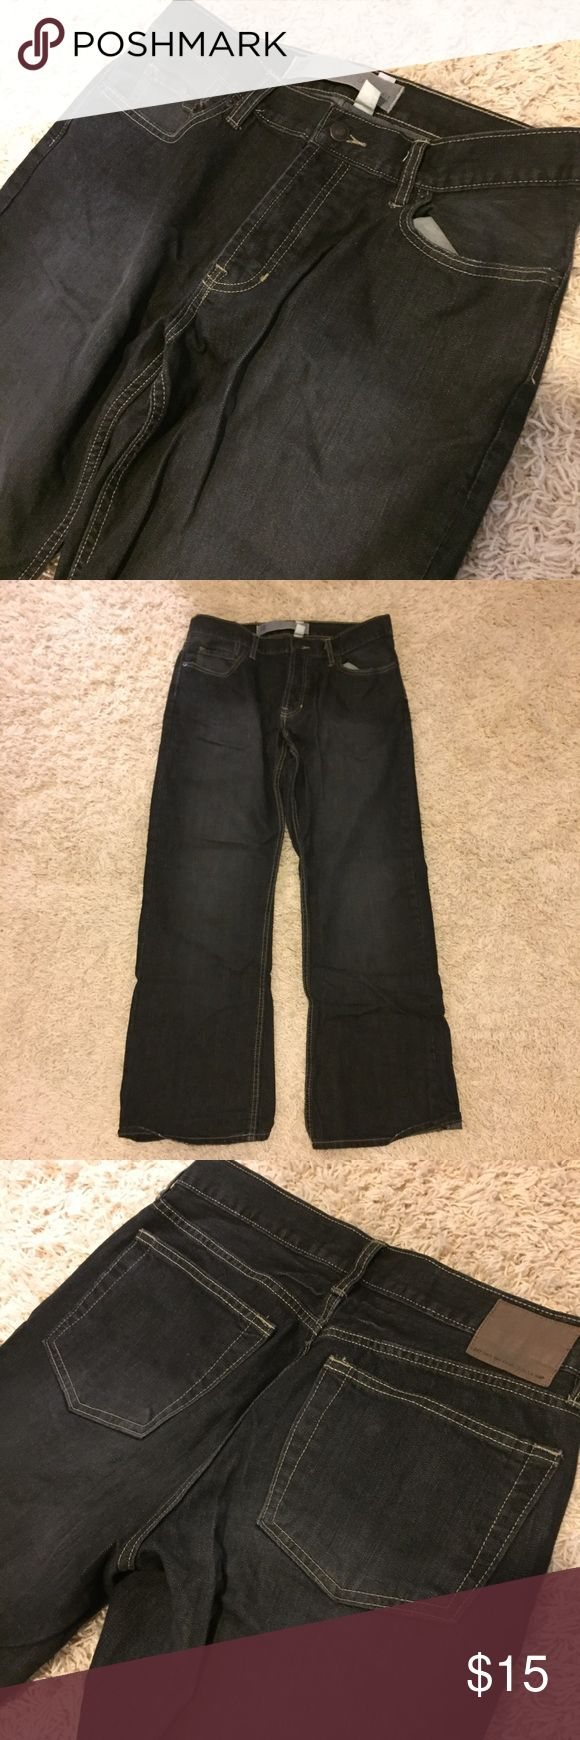 Men's bootcut jeans Great condition! Black wash color. GAP Jeans Bootcut